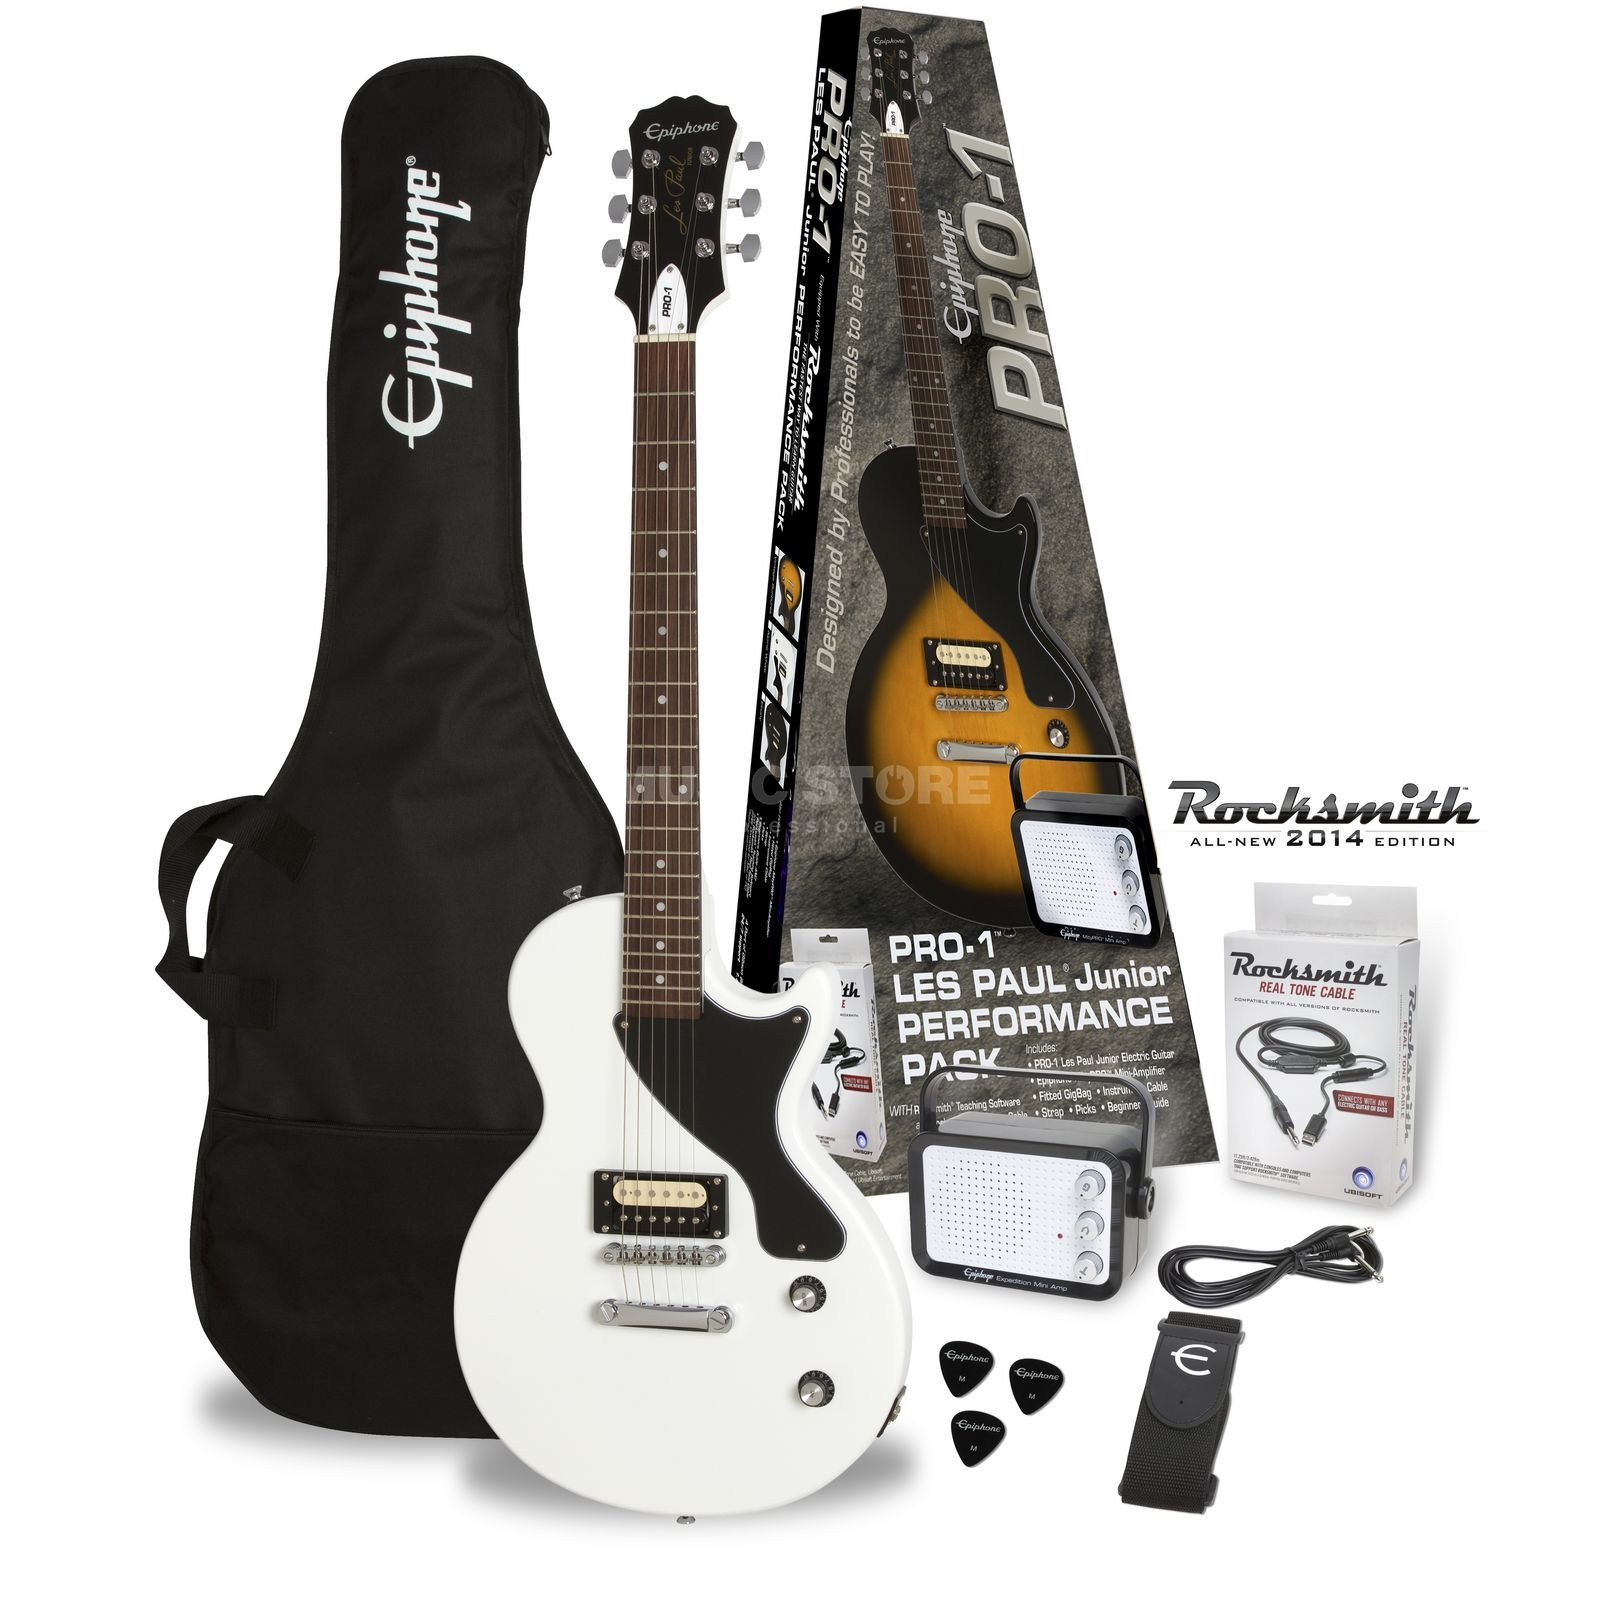 Epiphone PRO-1 Les Paul Junior Performance Pack Alpine White Product Image